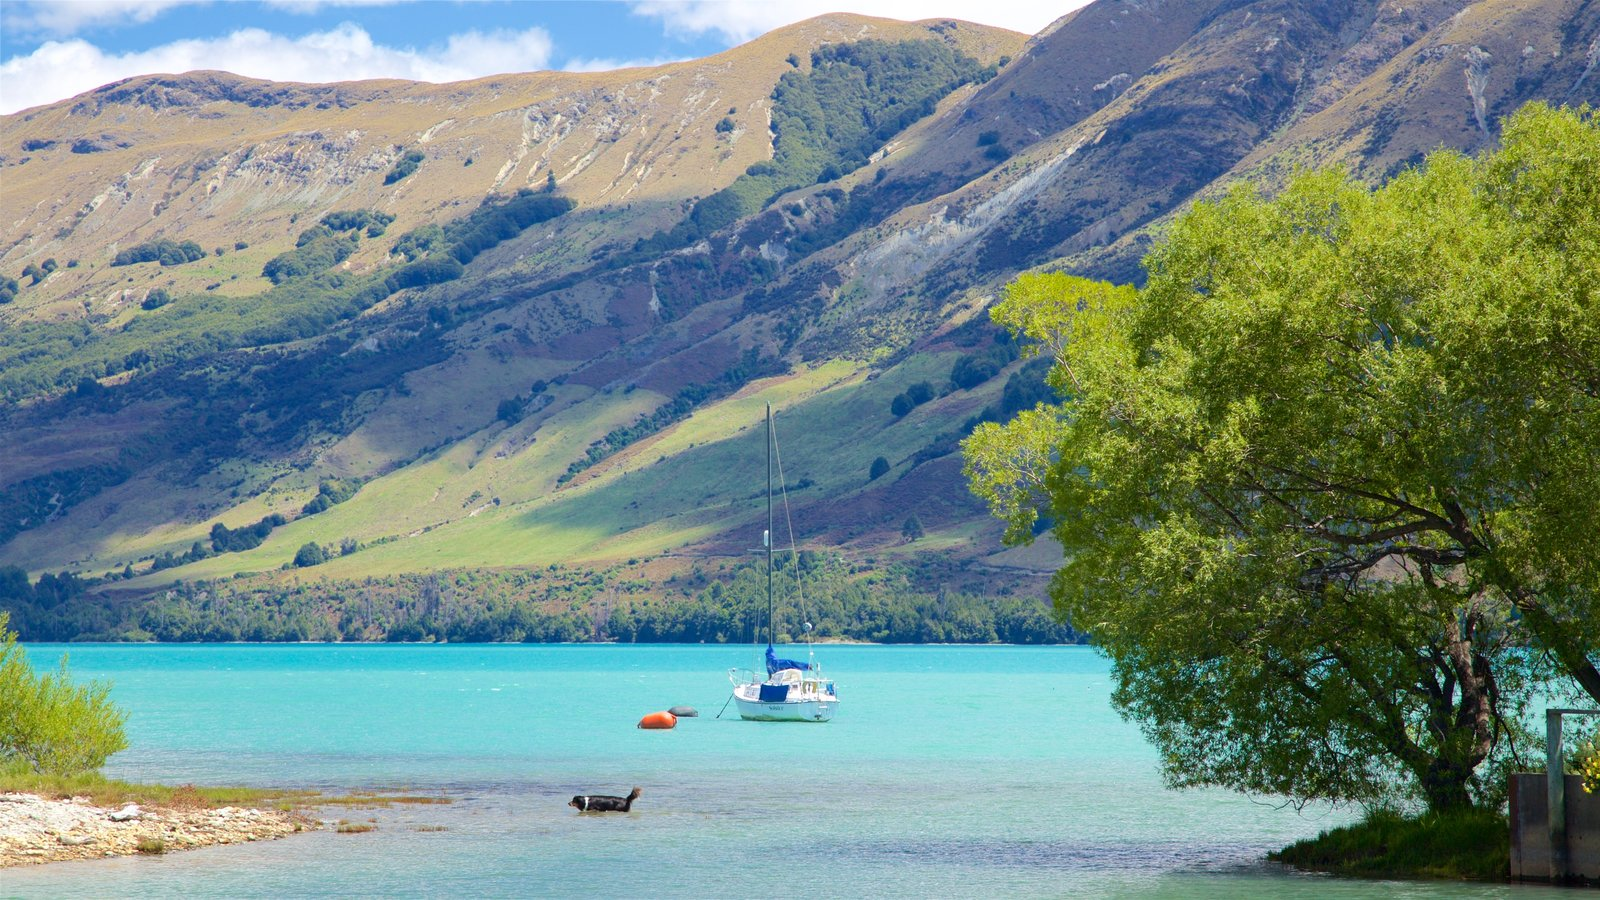 Glenorchy which includes mountains, sailing and a pebble beach